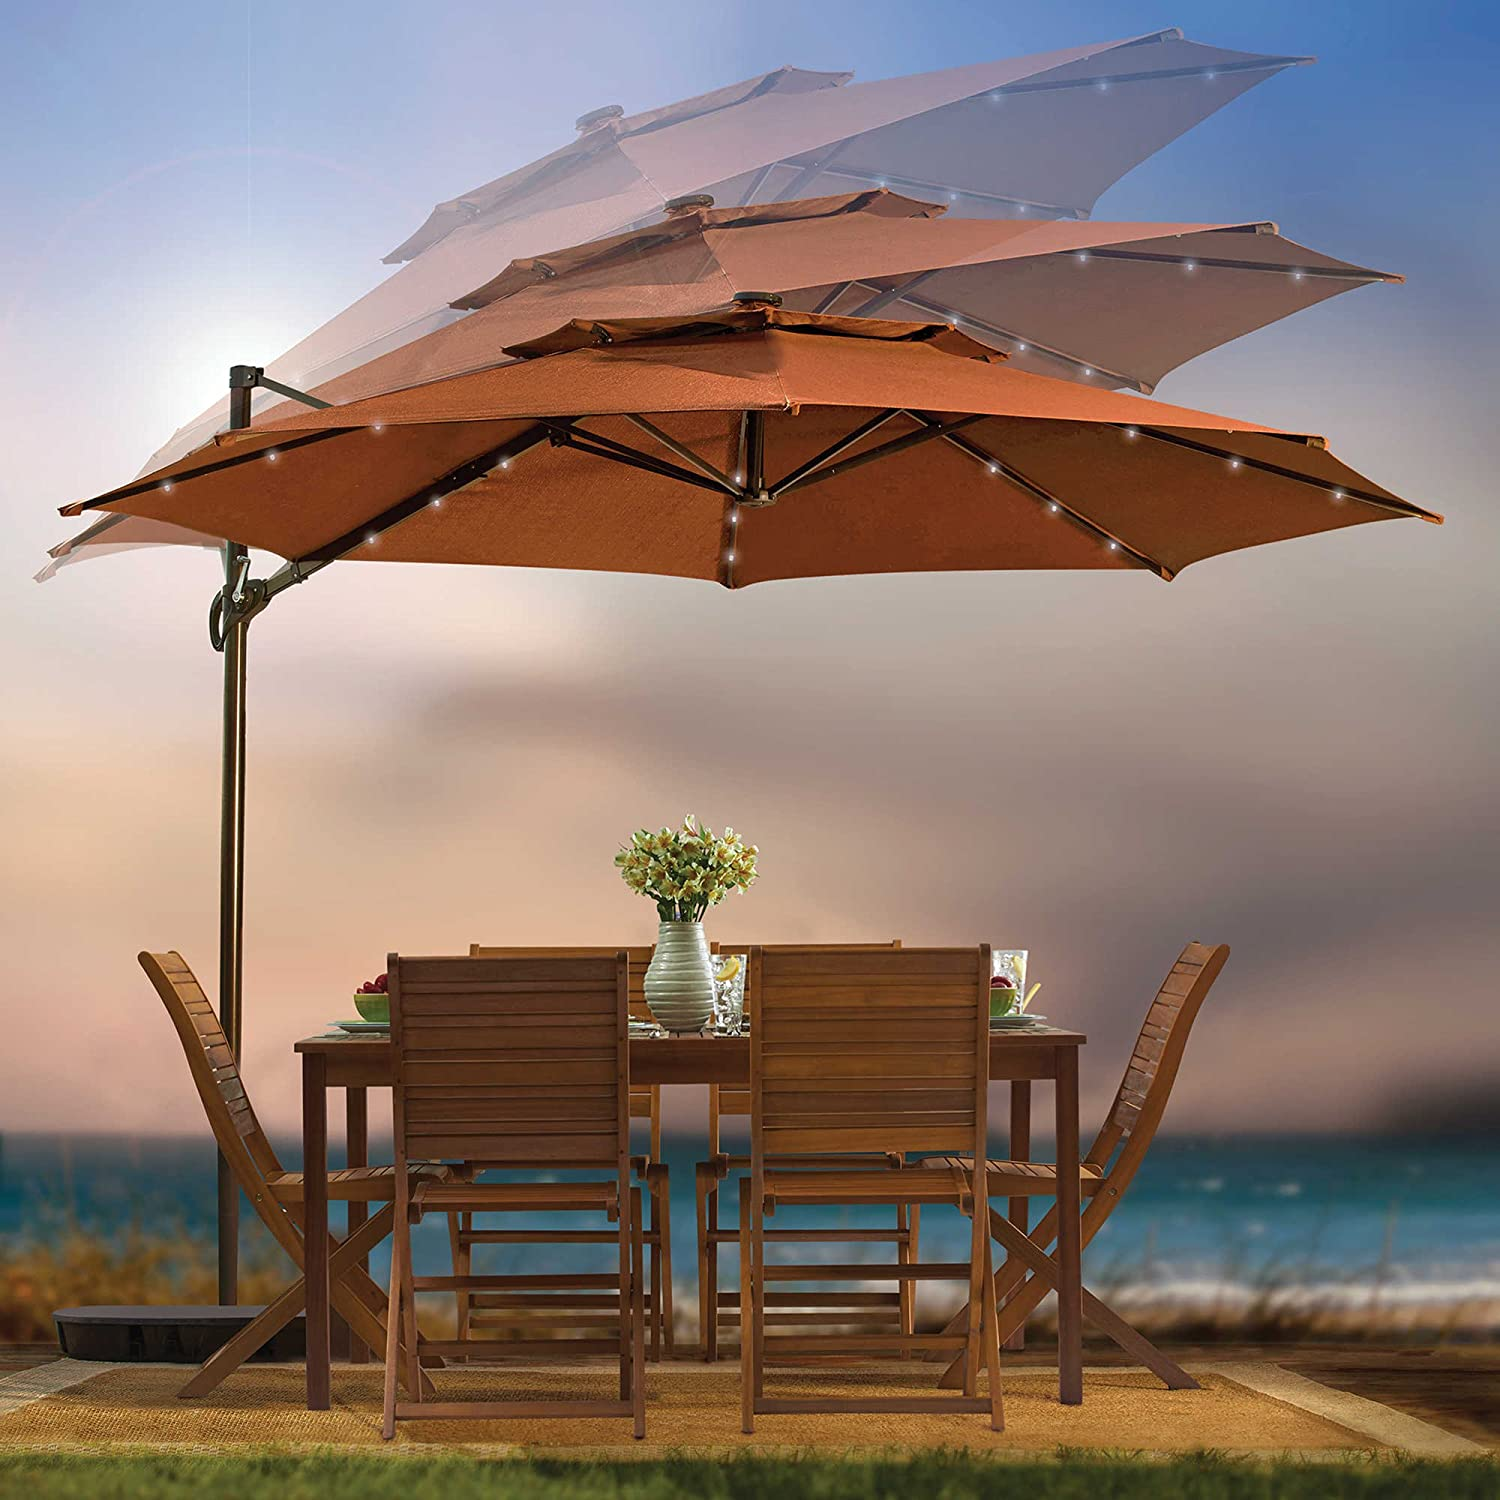 Amazon.com : Outdoor Patio Cantilever Umbrella 11 Foot Round Canopy With  Solor Powered Lights Includes Base And Storage Cover (Salsa) : Garden U0026  Outdoor